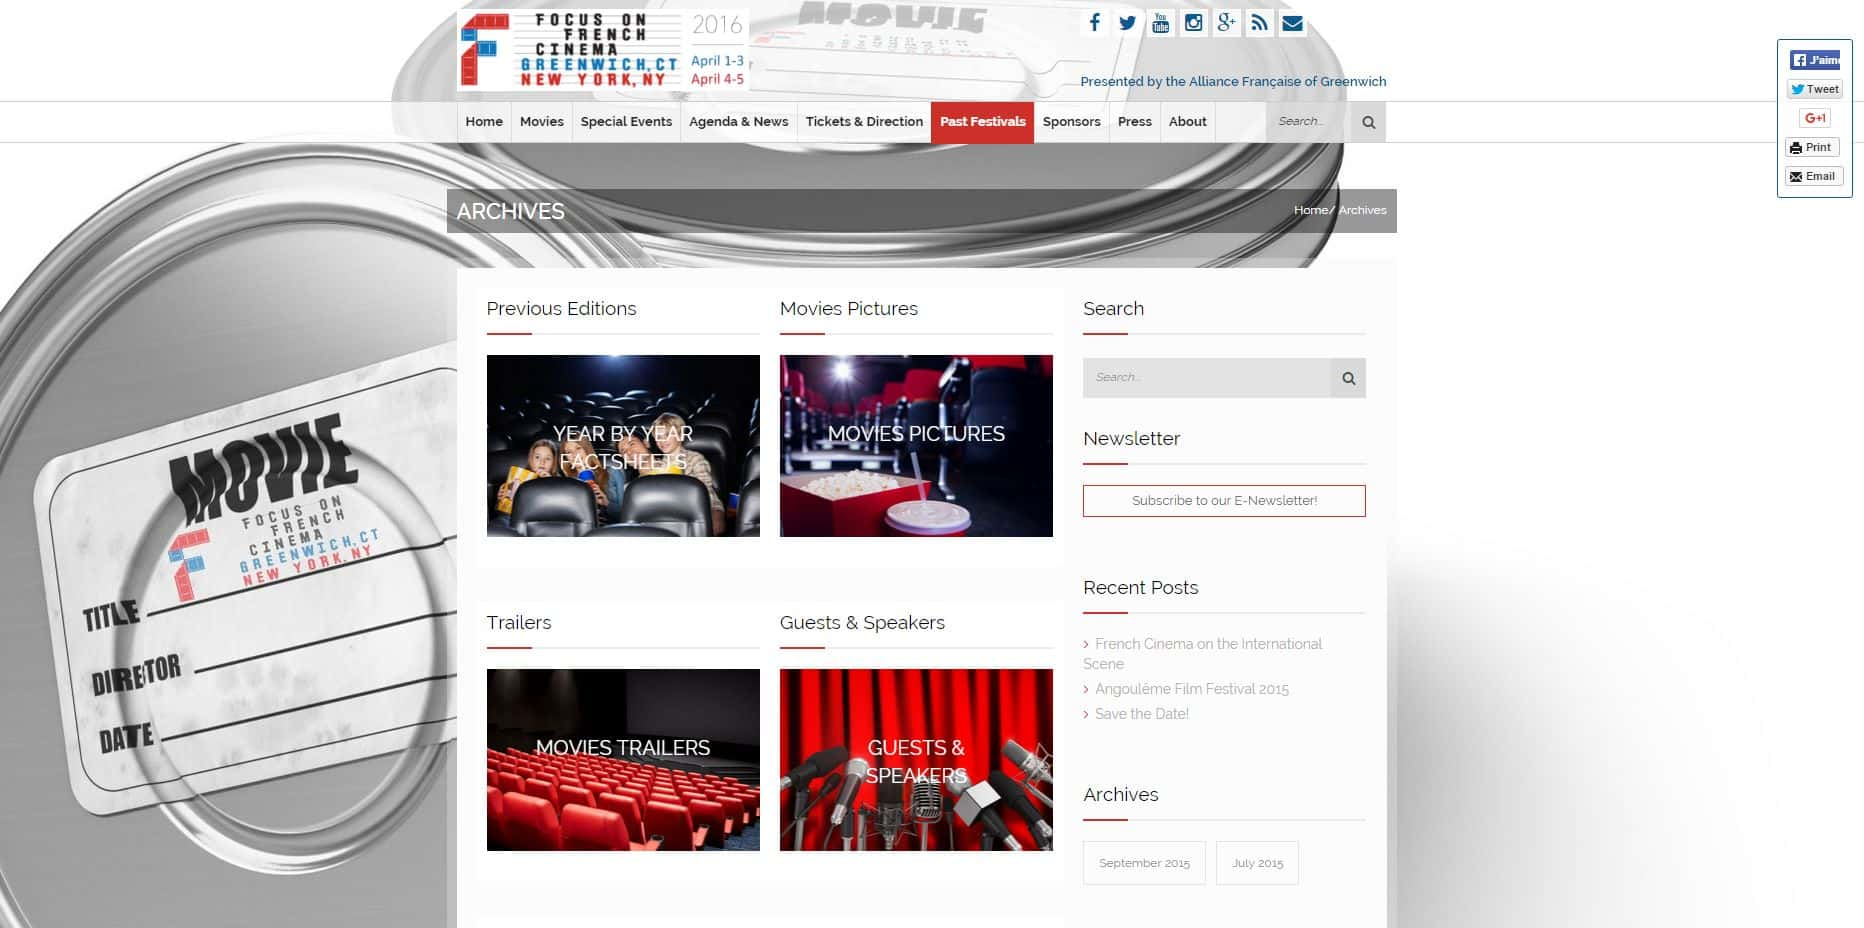 conception-web-montreal-focus-on-french-cinema-10